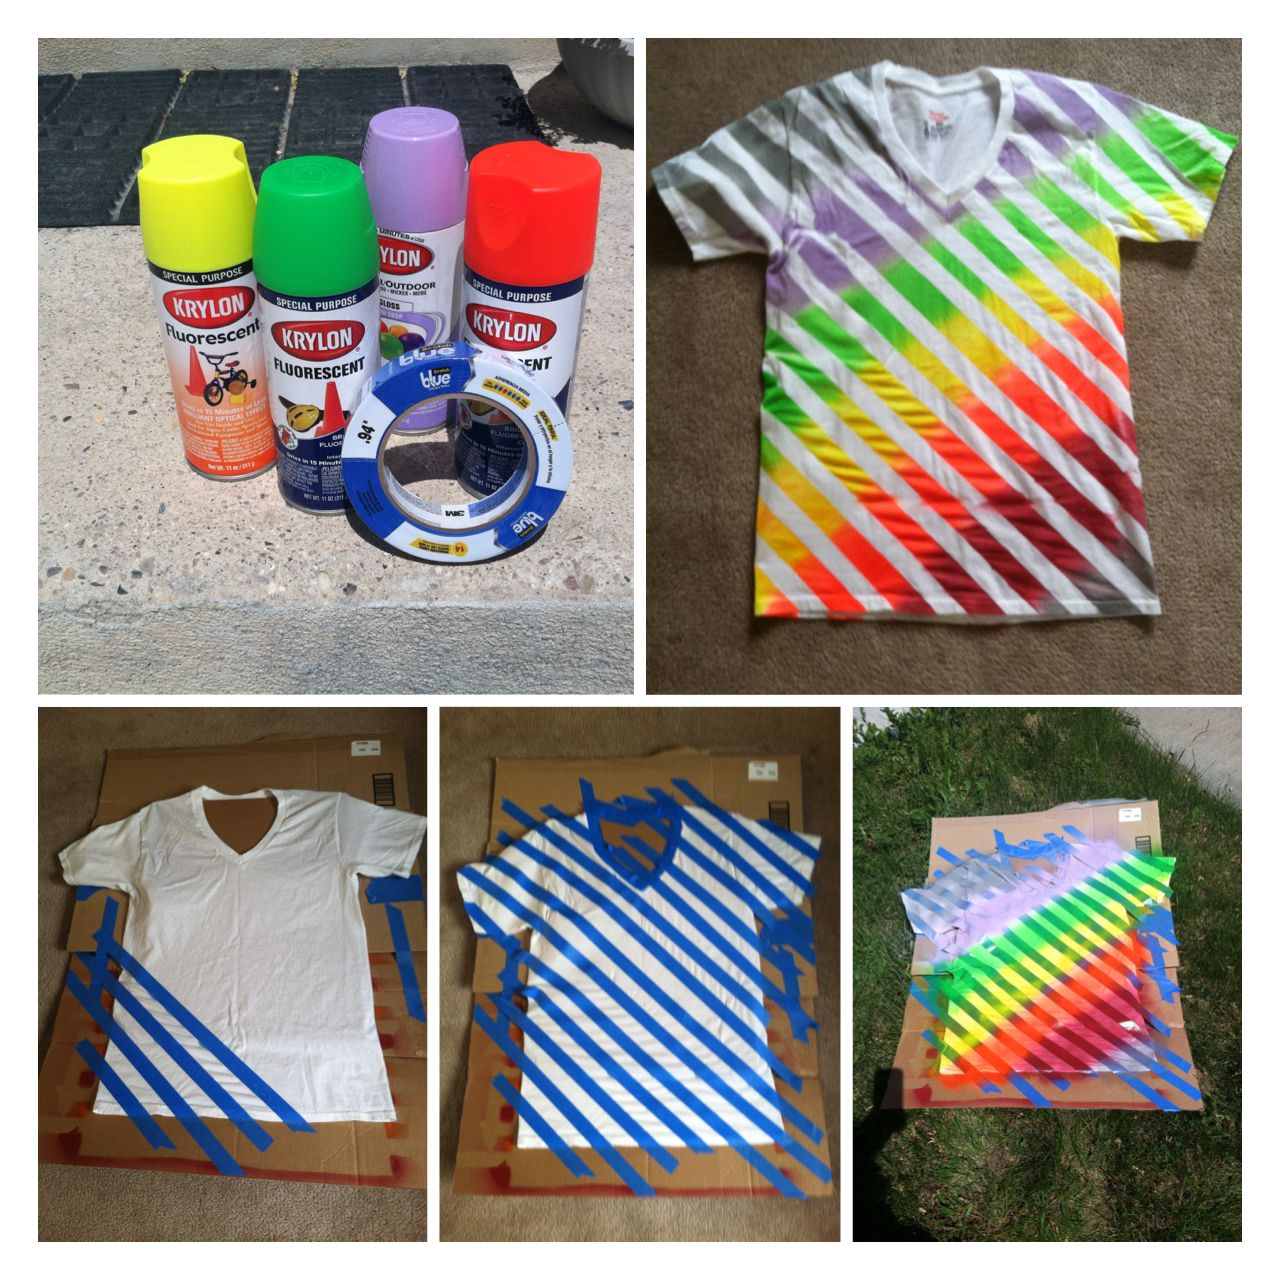 Can you spray paint clothes